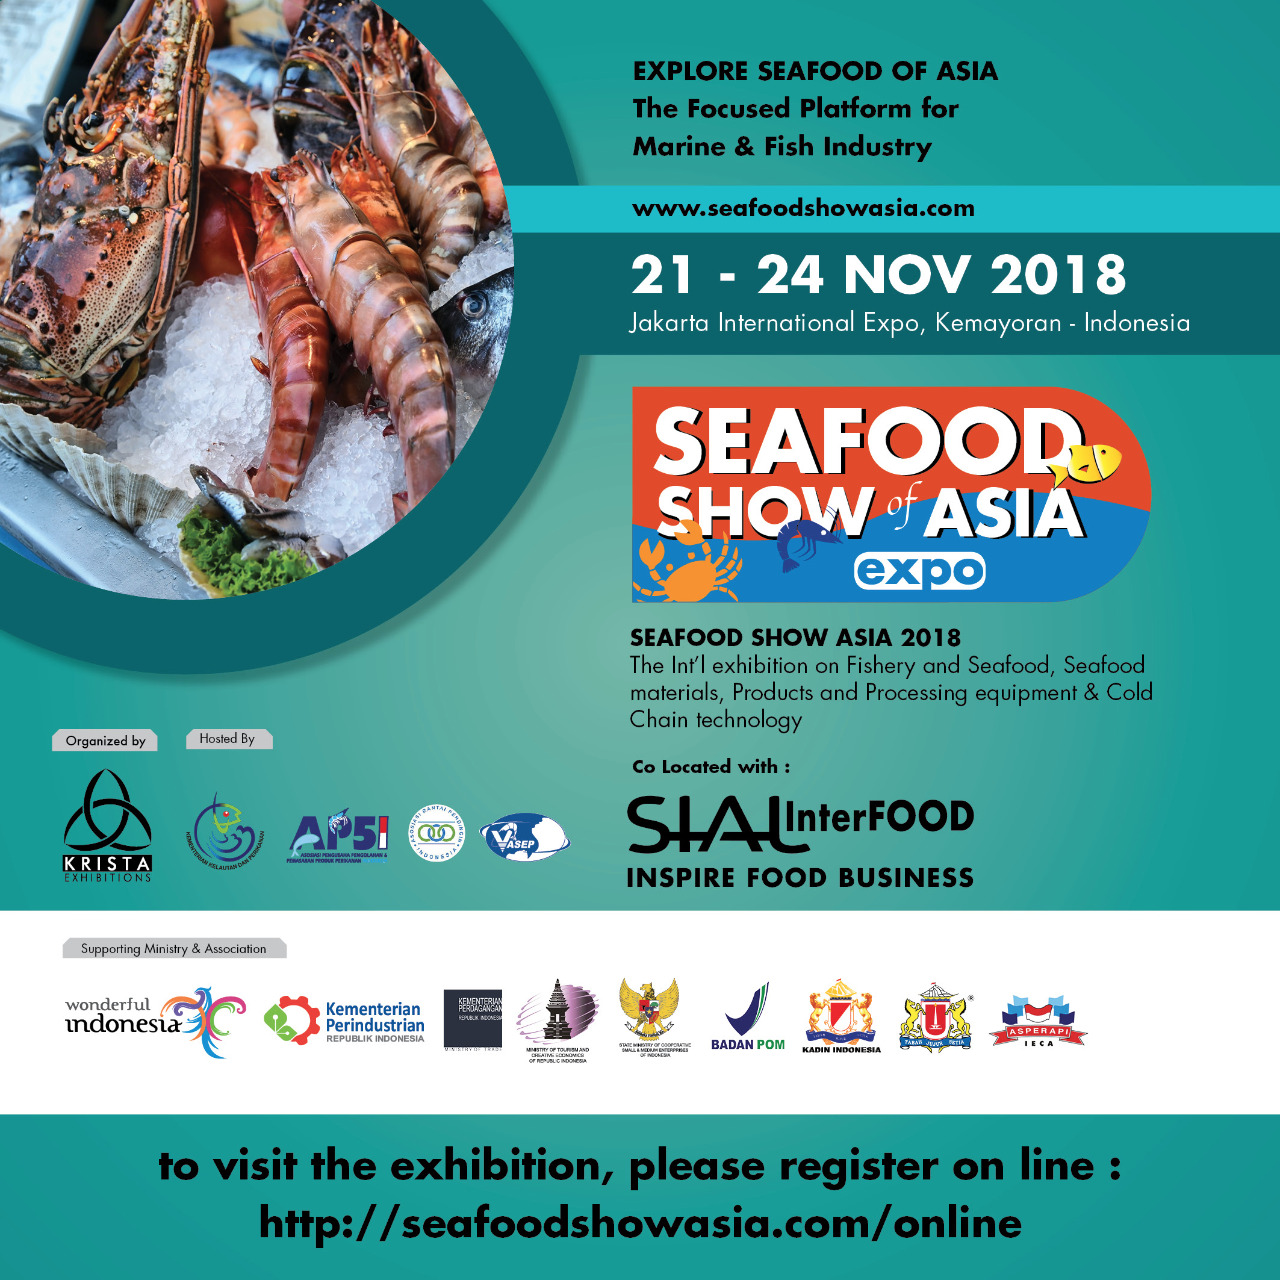 Seafood Show of Asia 2018, on 21 – 24th November at JIEx